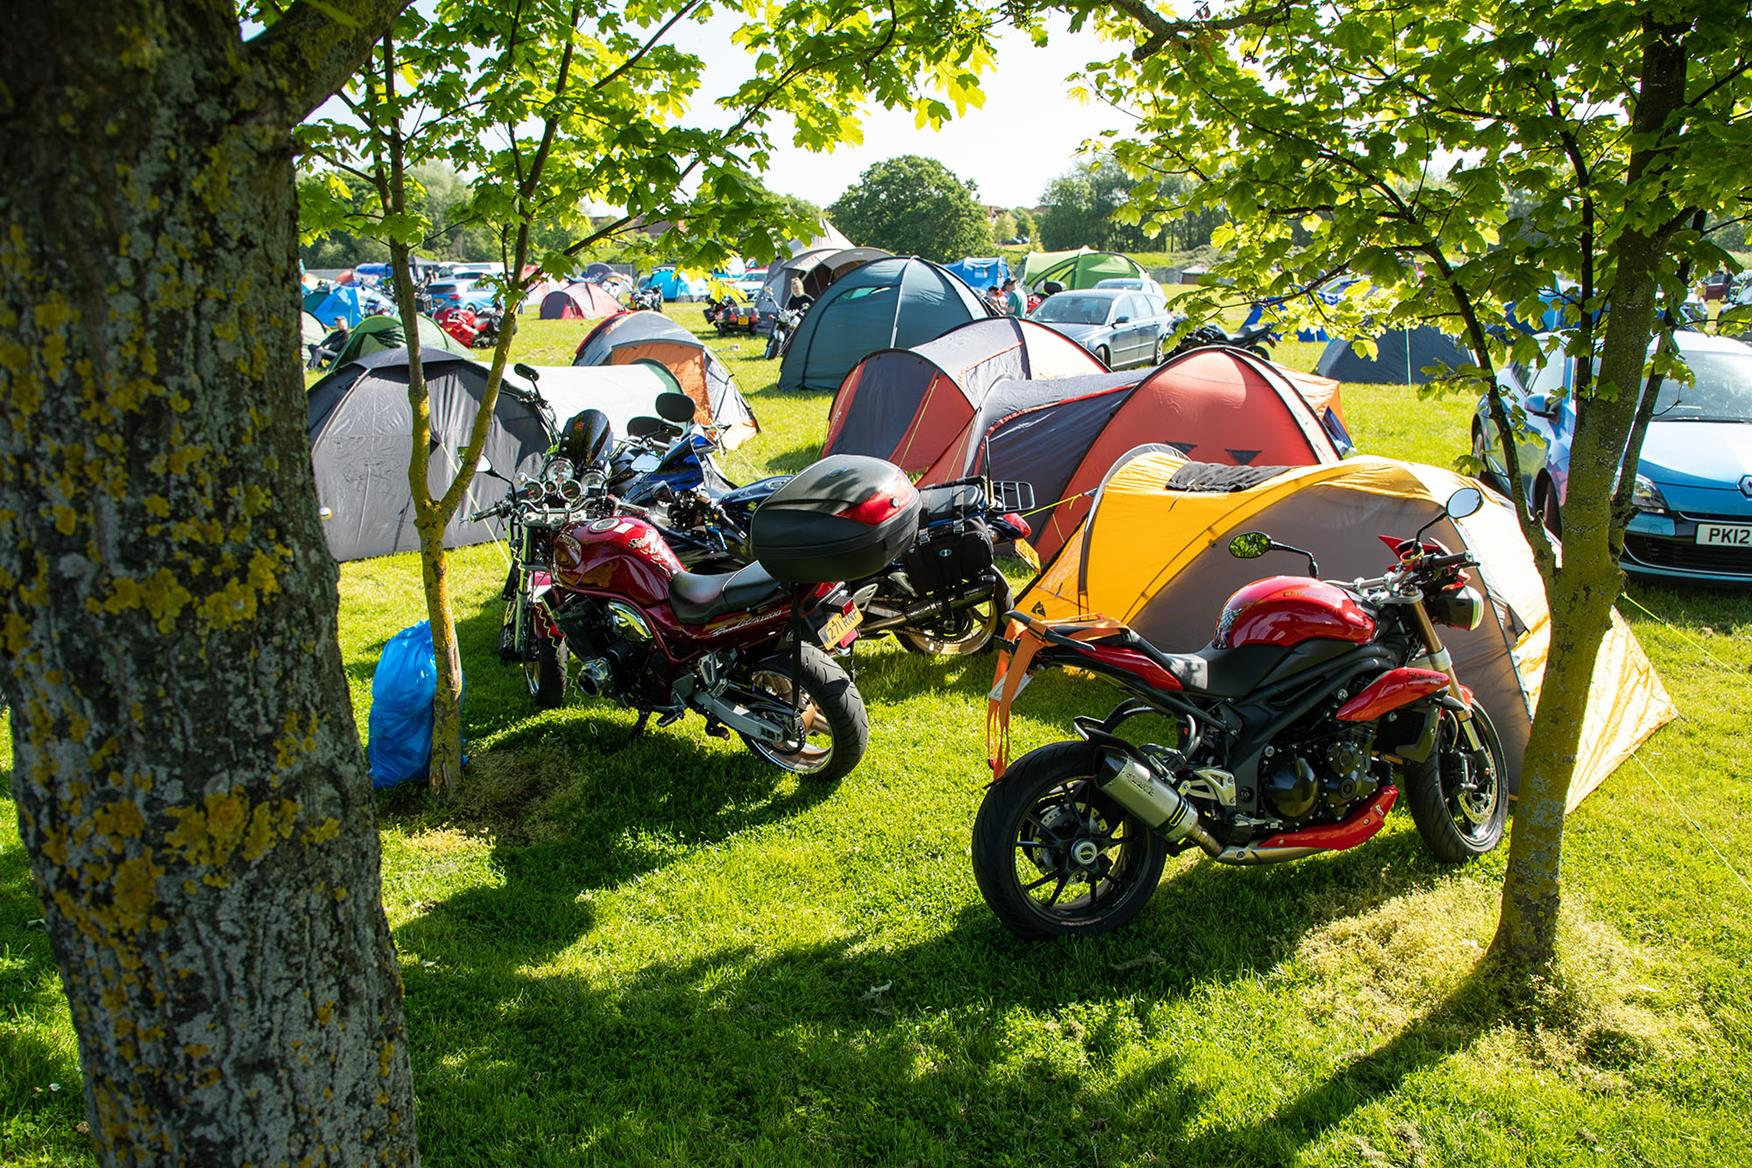 Camping at the MCN Festival